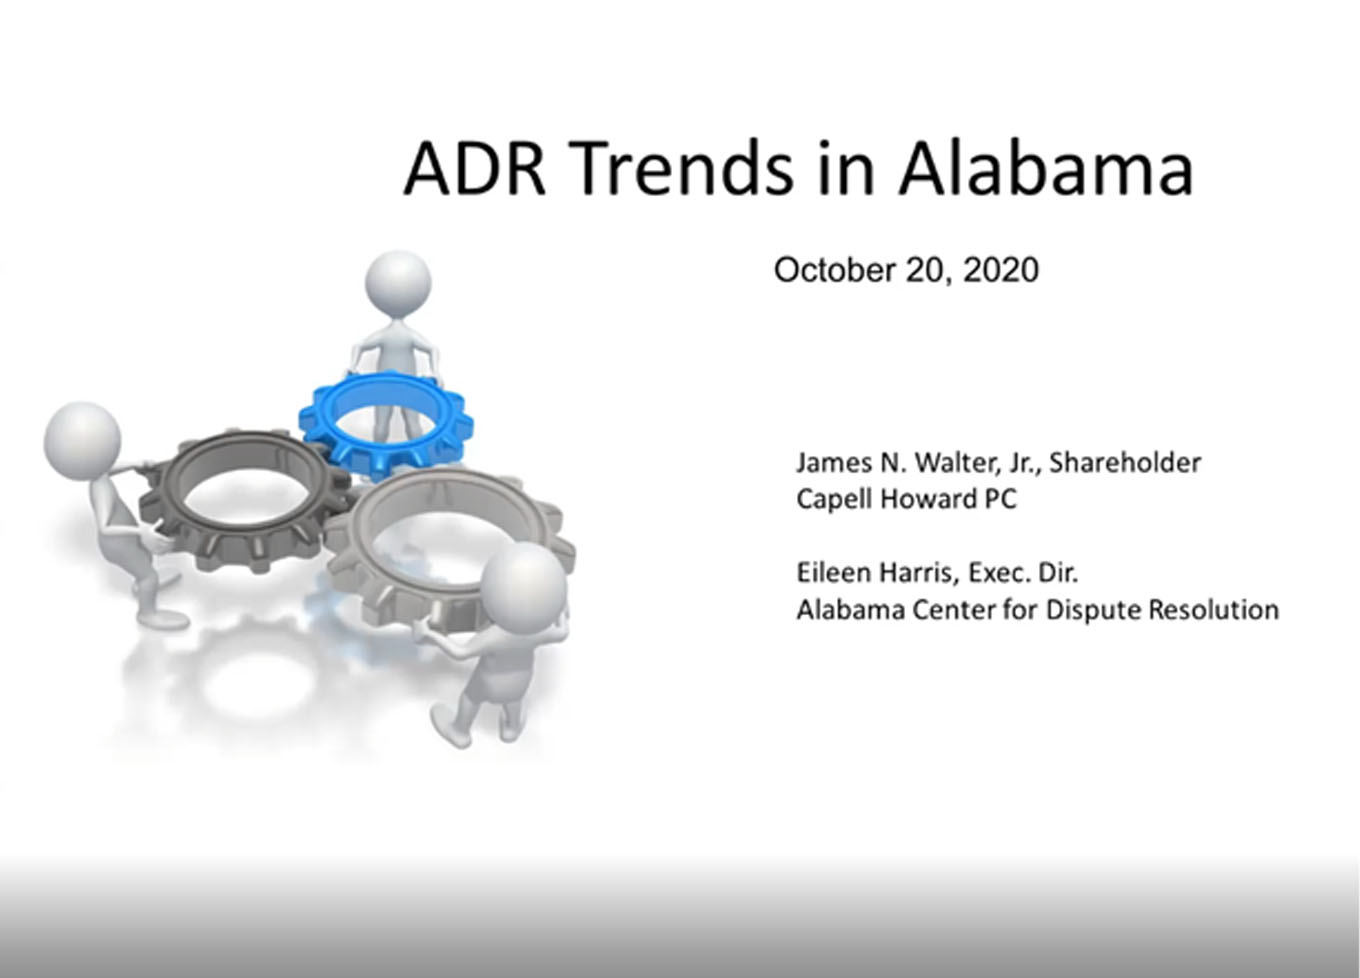 ADR Trends in Alabama